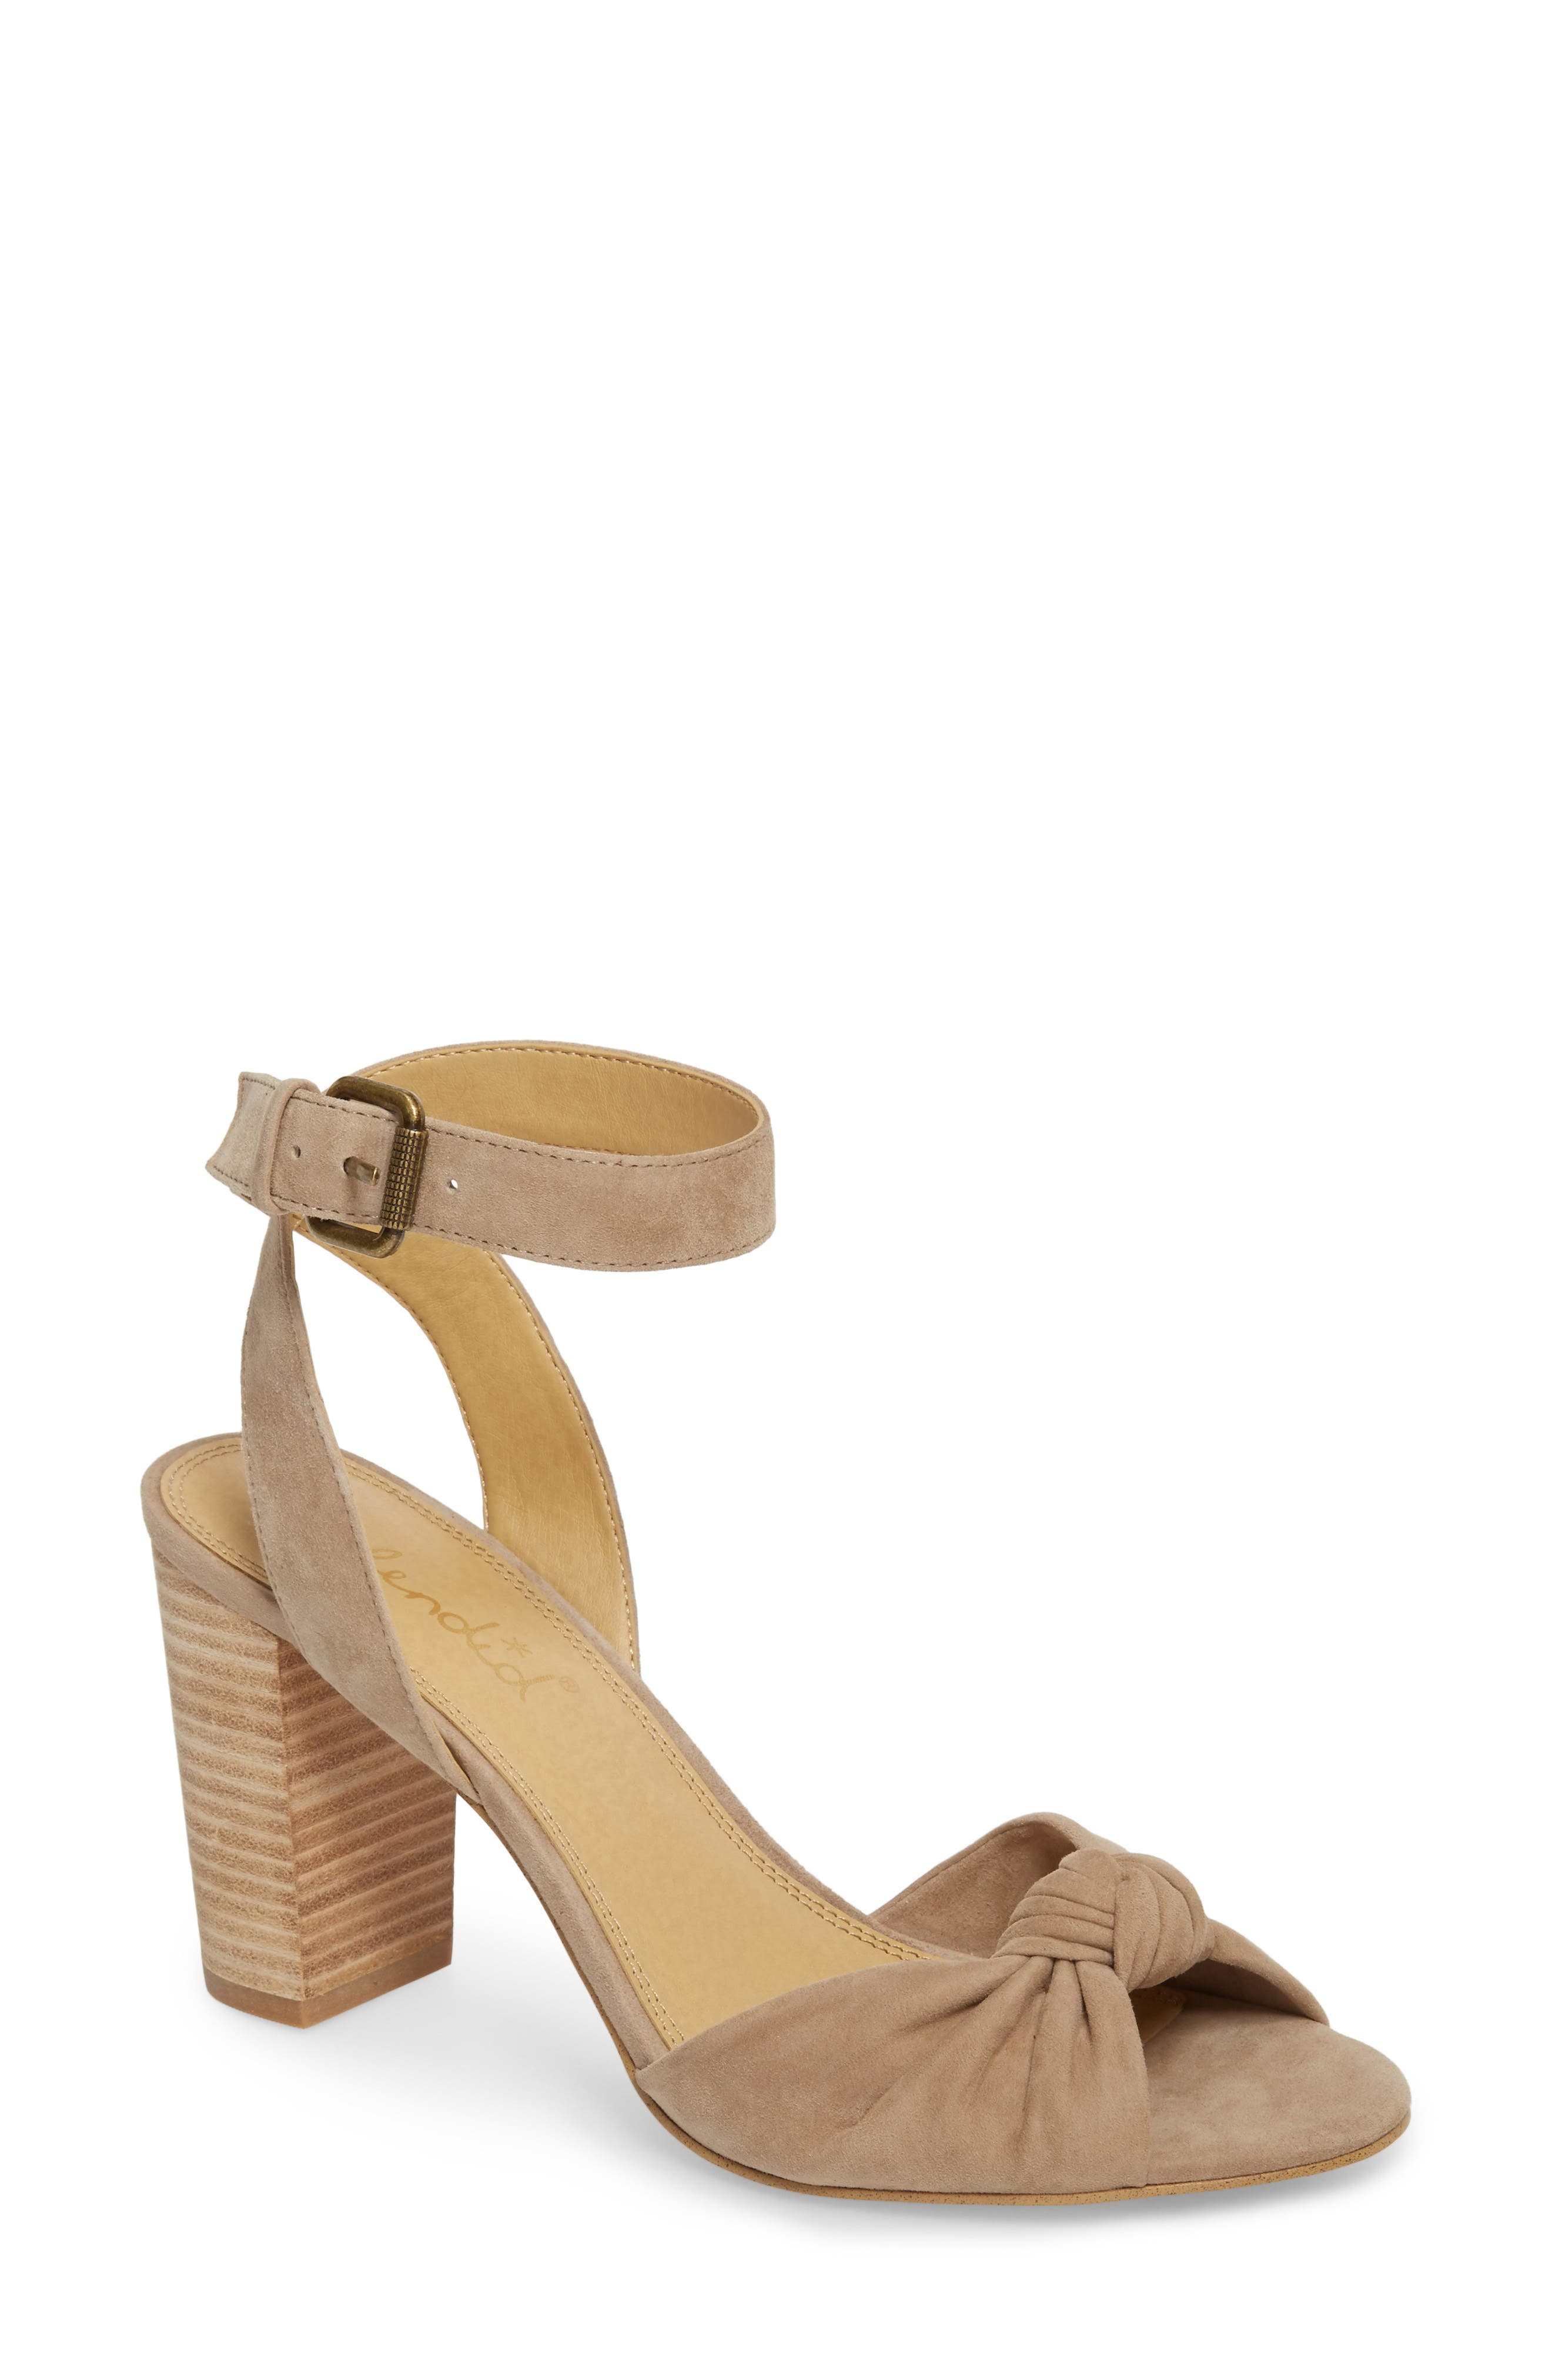 Bea Knotted Sandal,                         Main,                         color, 252